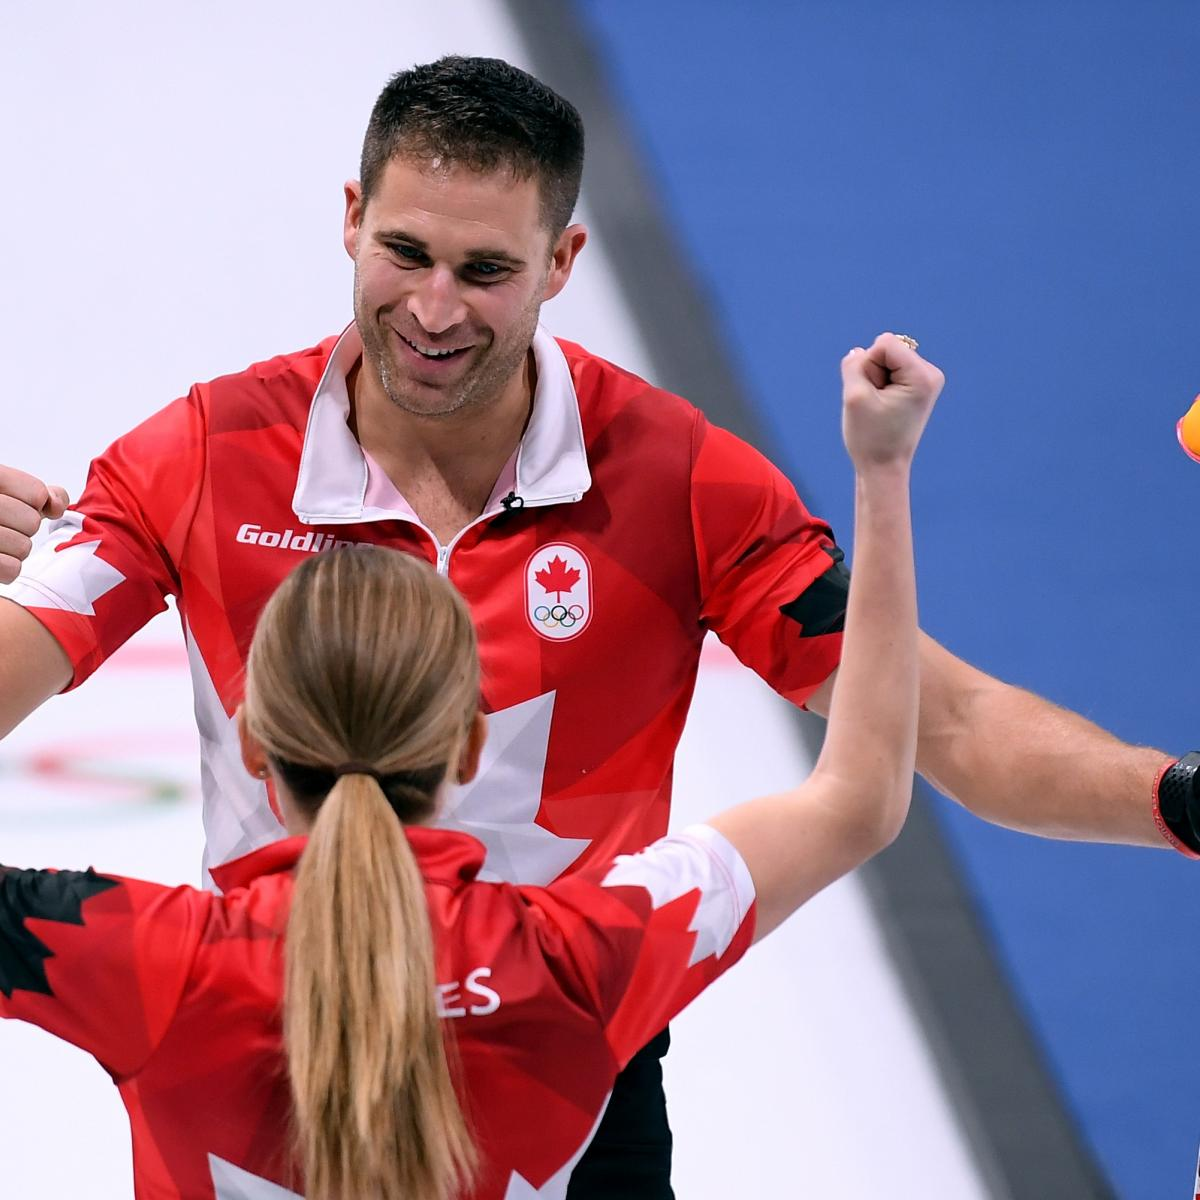 Canada Tops Switzerland to Win Curling Mixed Doubles Gold Medal at 2018 Olympics